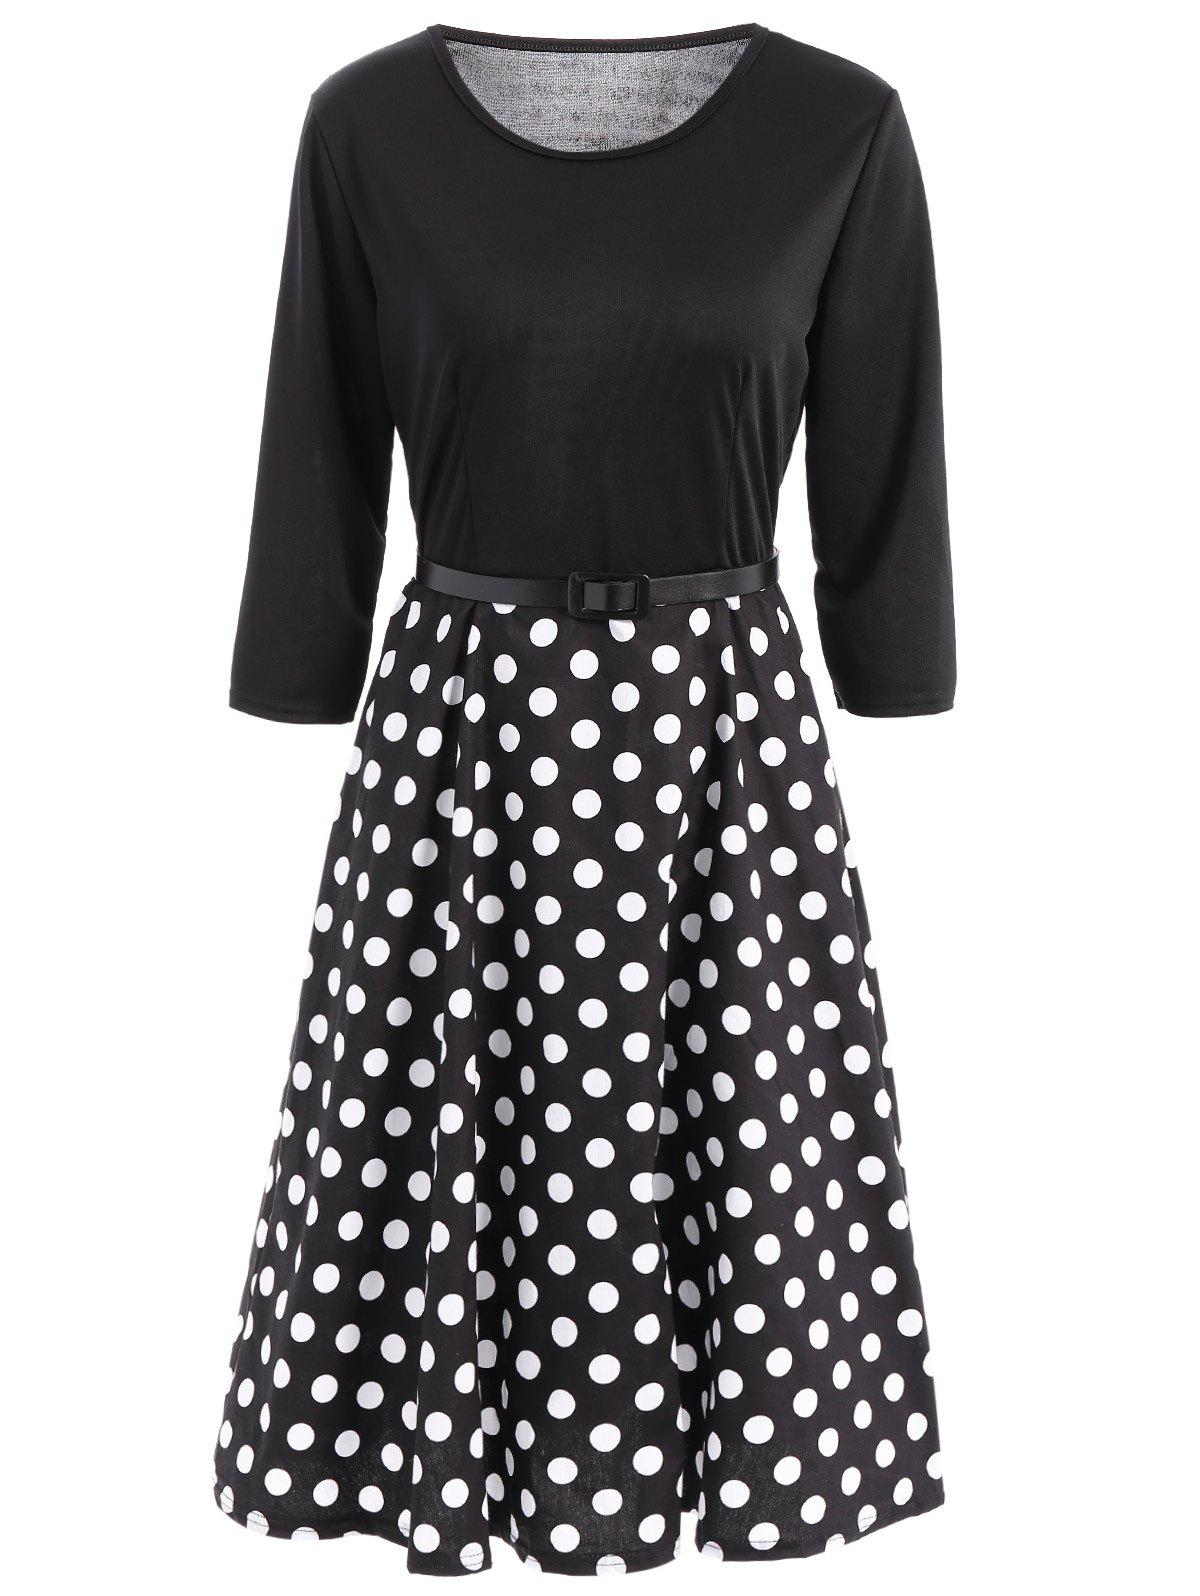 Vintage Belted 3/4 Sleeve Polka Dot Fit and Flare Dress For Women - BLACK XL